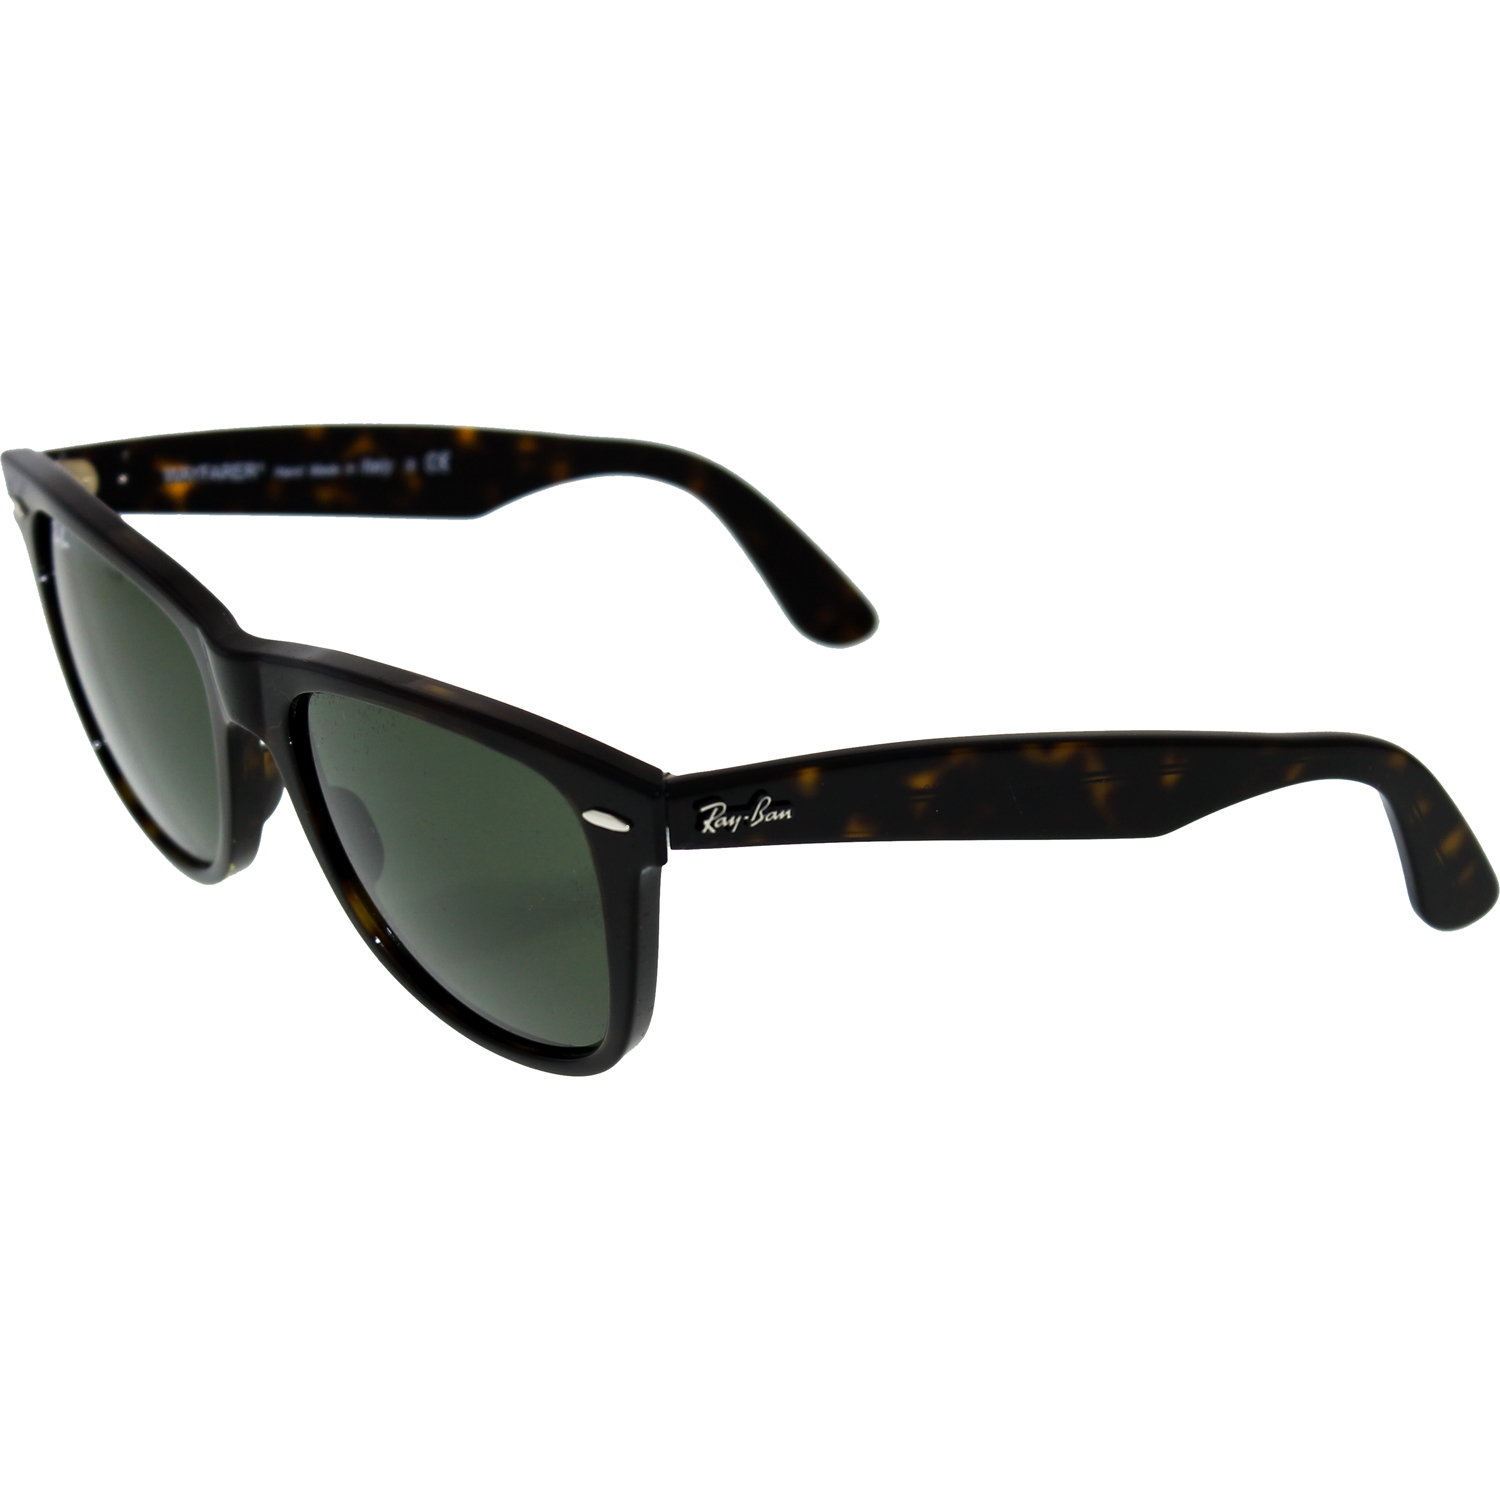 7a040acb1e Spiderwire Sunglasses